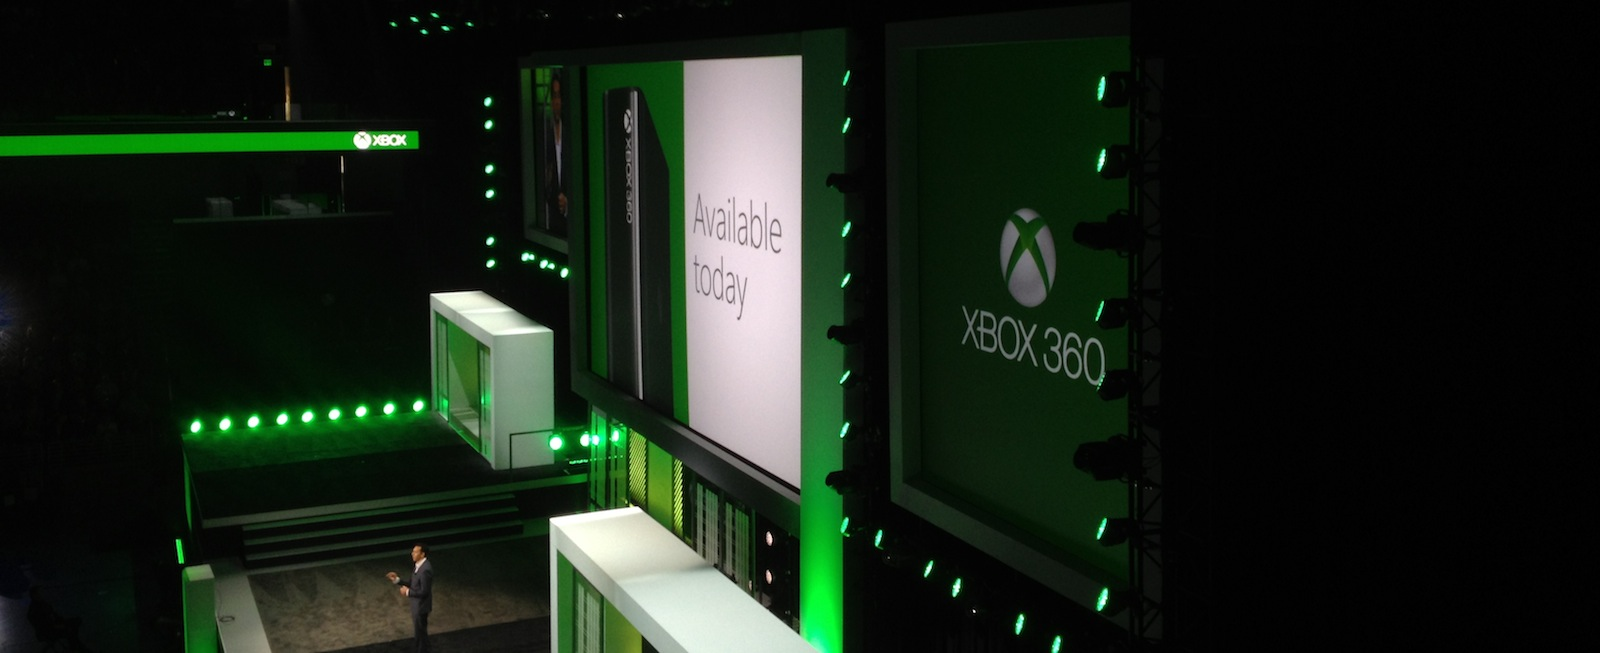 Microsoft Announces New Xbox 360 Console Based On Xbox One